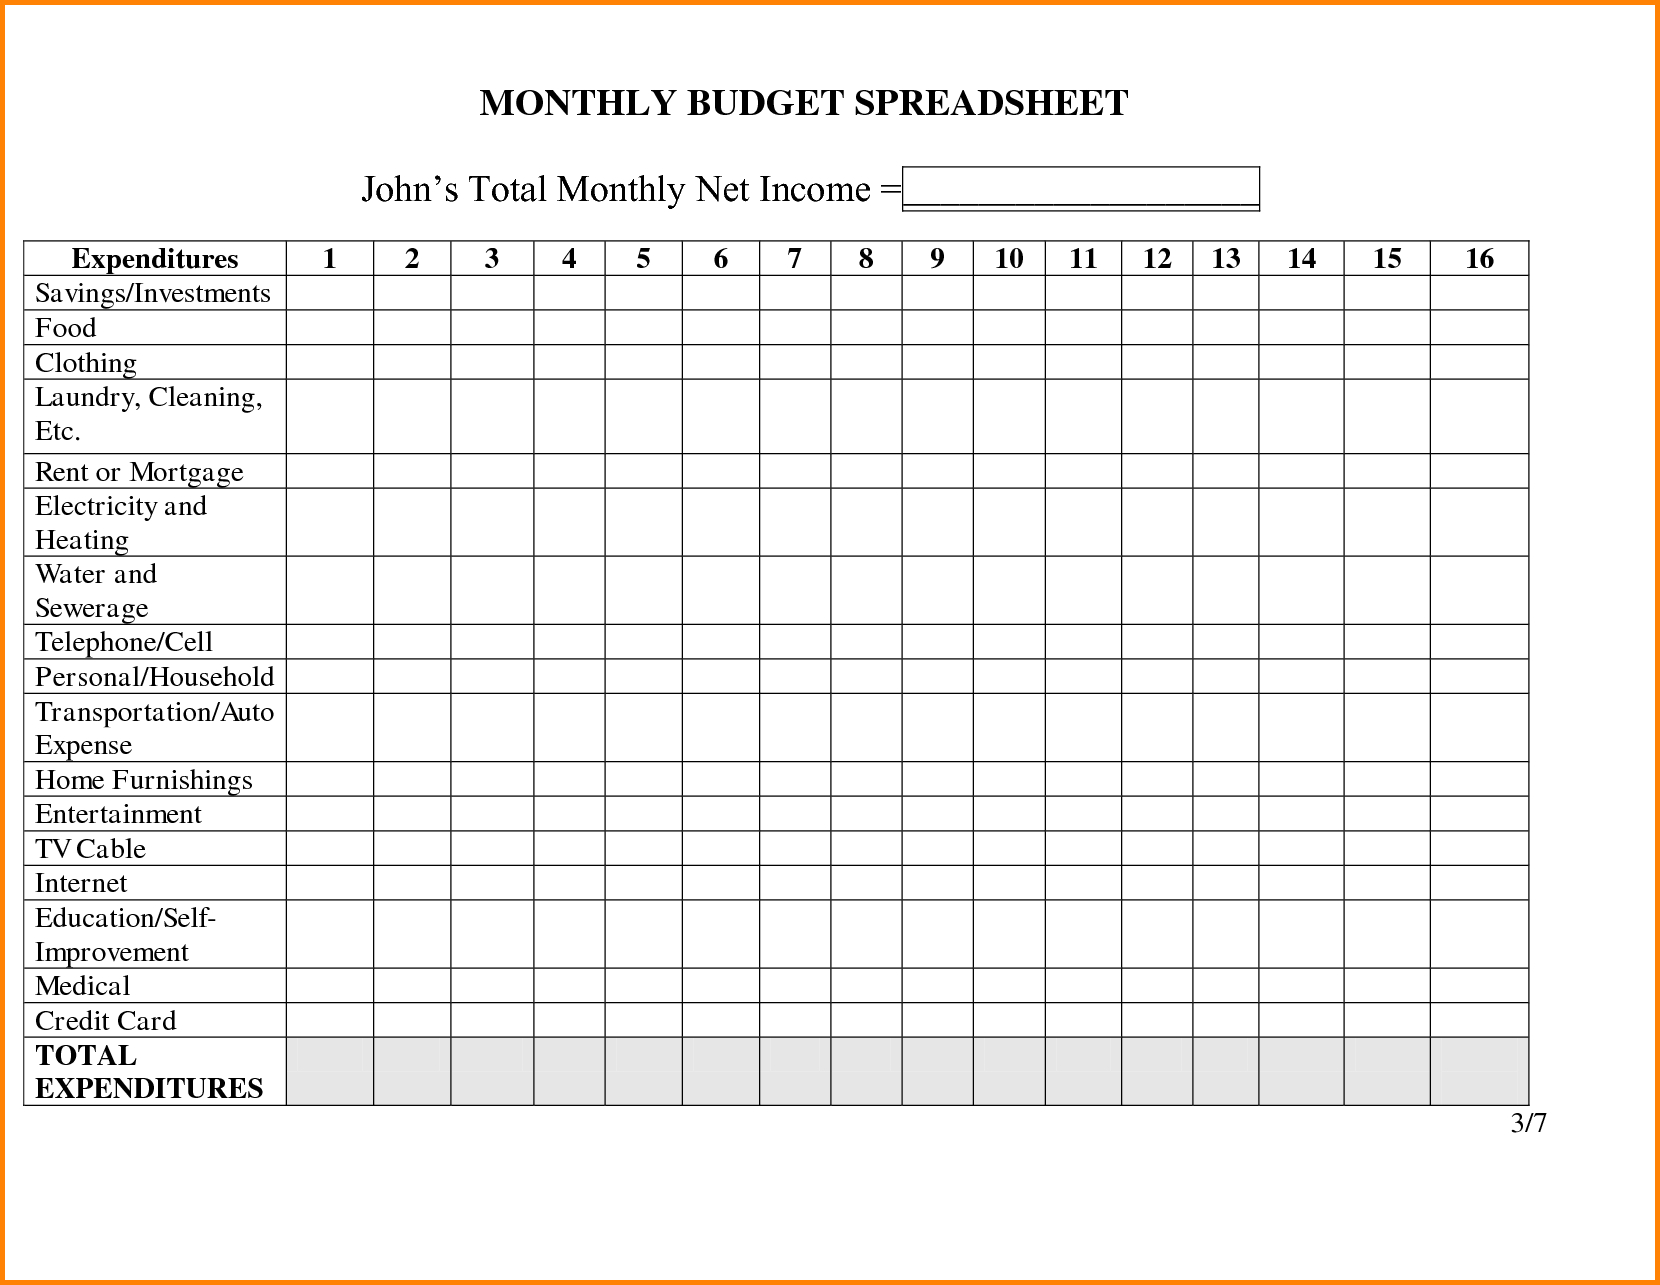 Monthly Household Budget Adsheet Family Template Worksheet Printable - Free Printable Monthly Household Budget Sheet